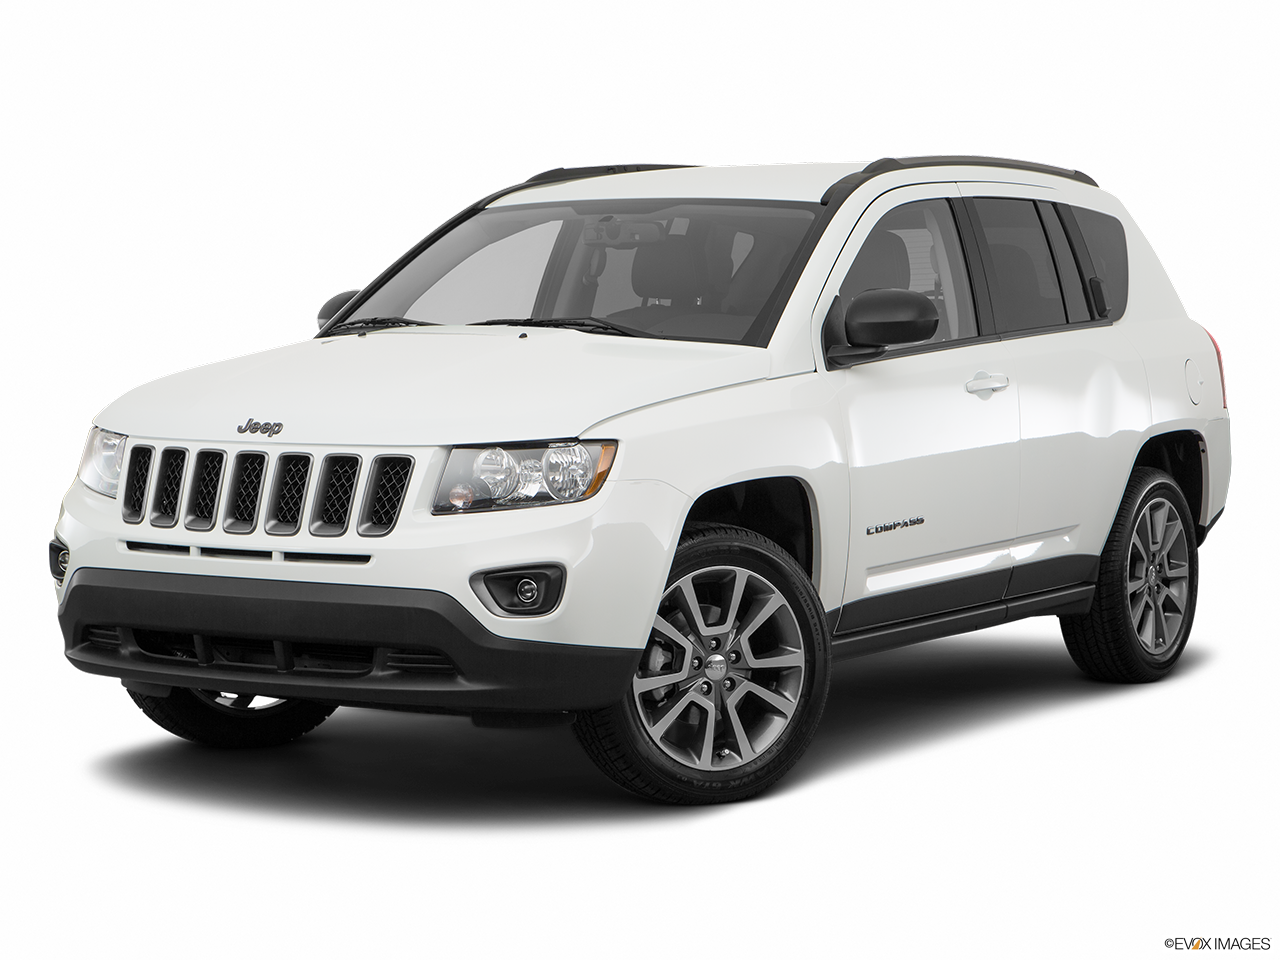 Test Drive A 2017 Jeep Compass at Arrigo CDJR West Palm Beach in West Palm Beach